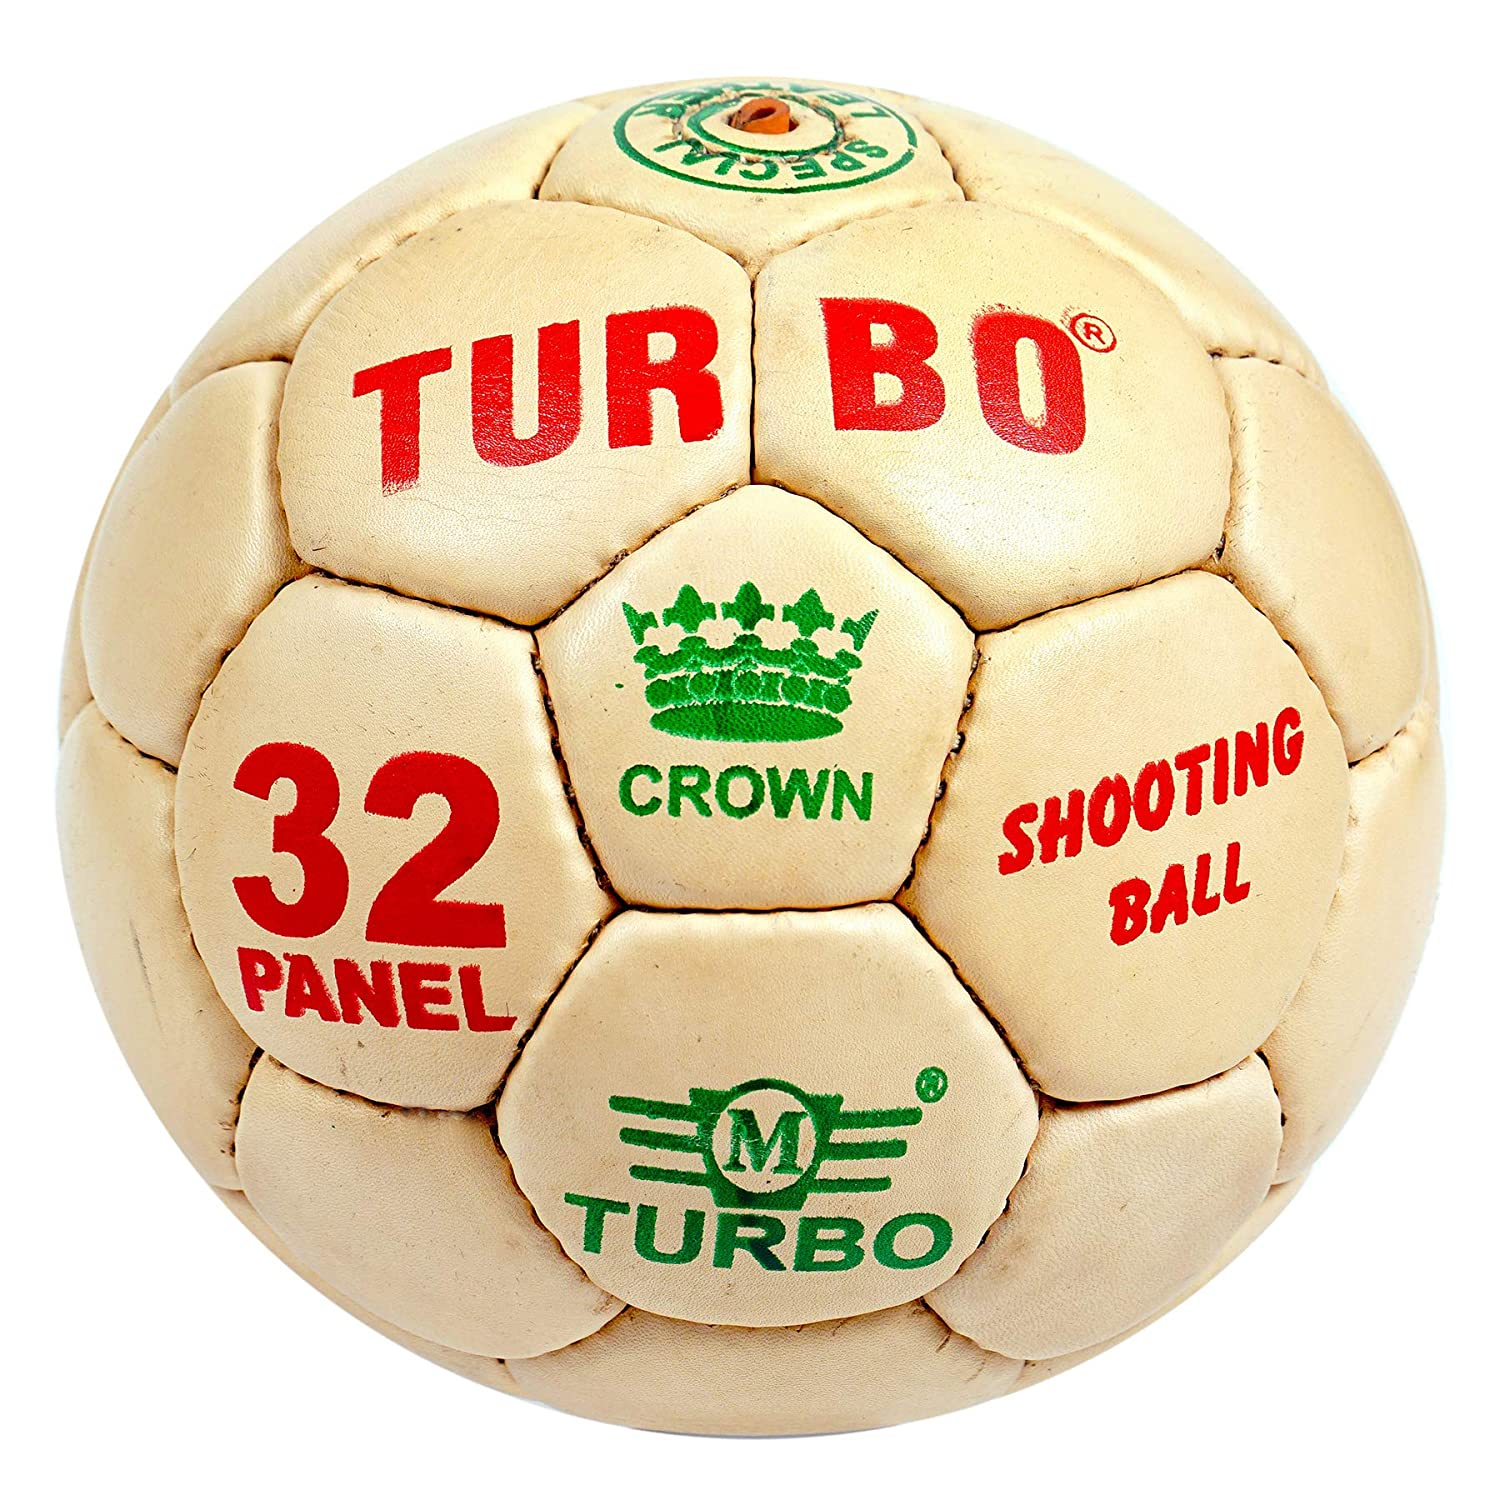 Crown Shooting Ball - Size 3